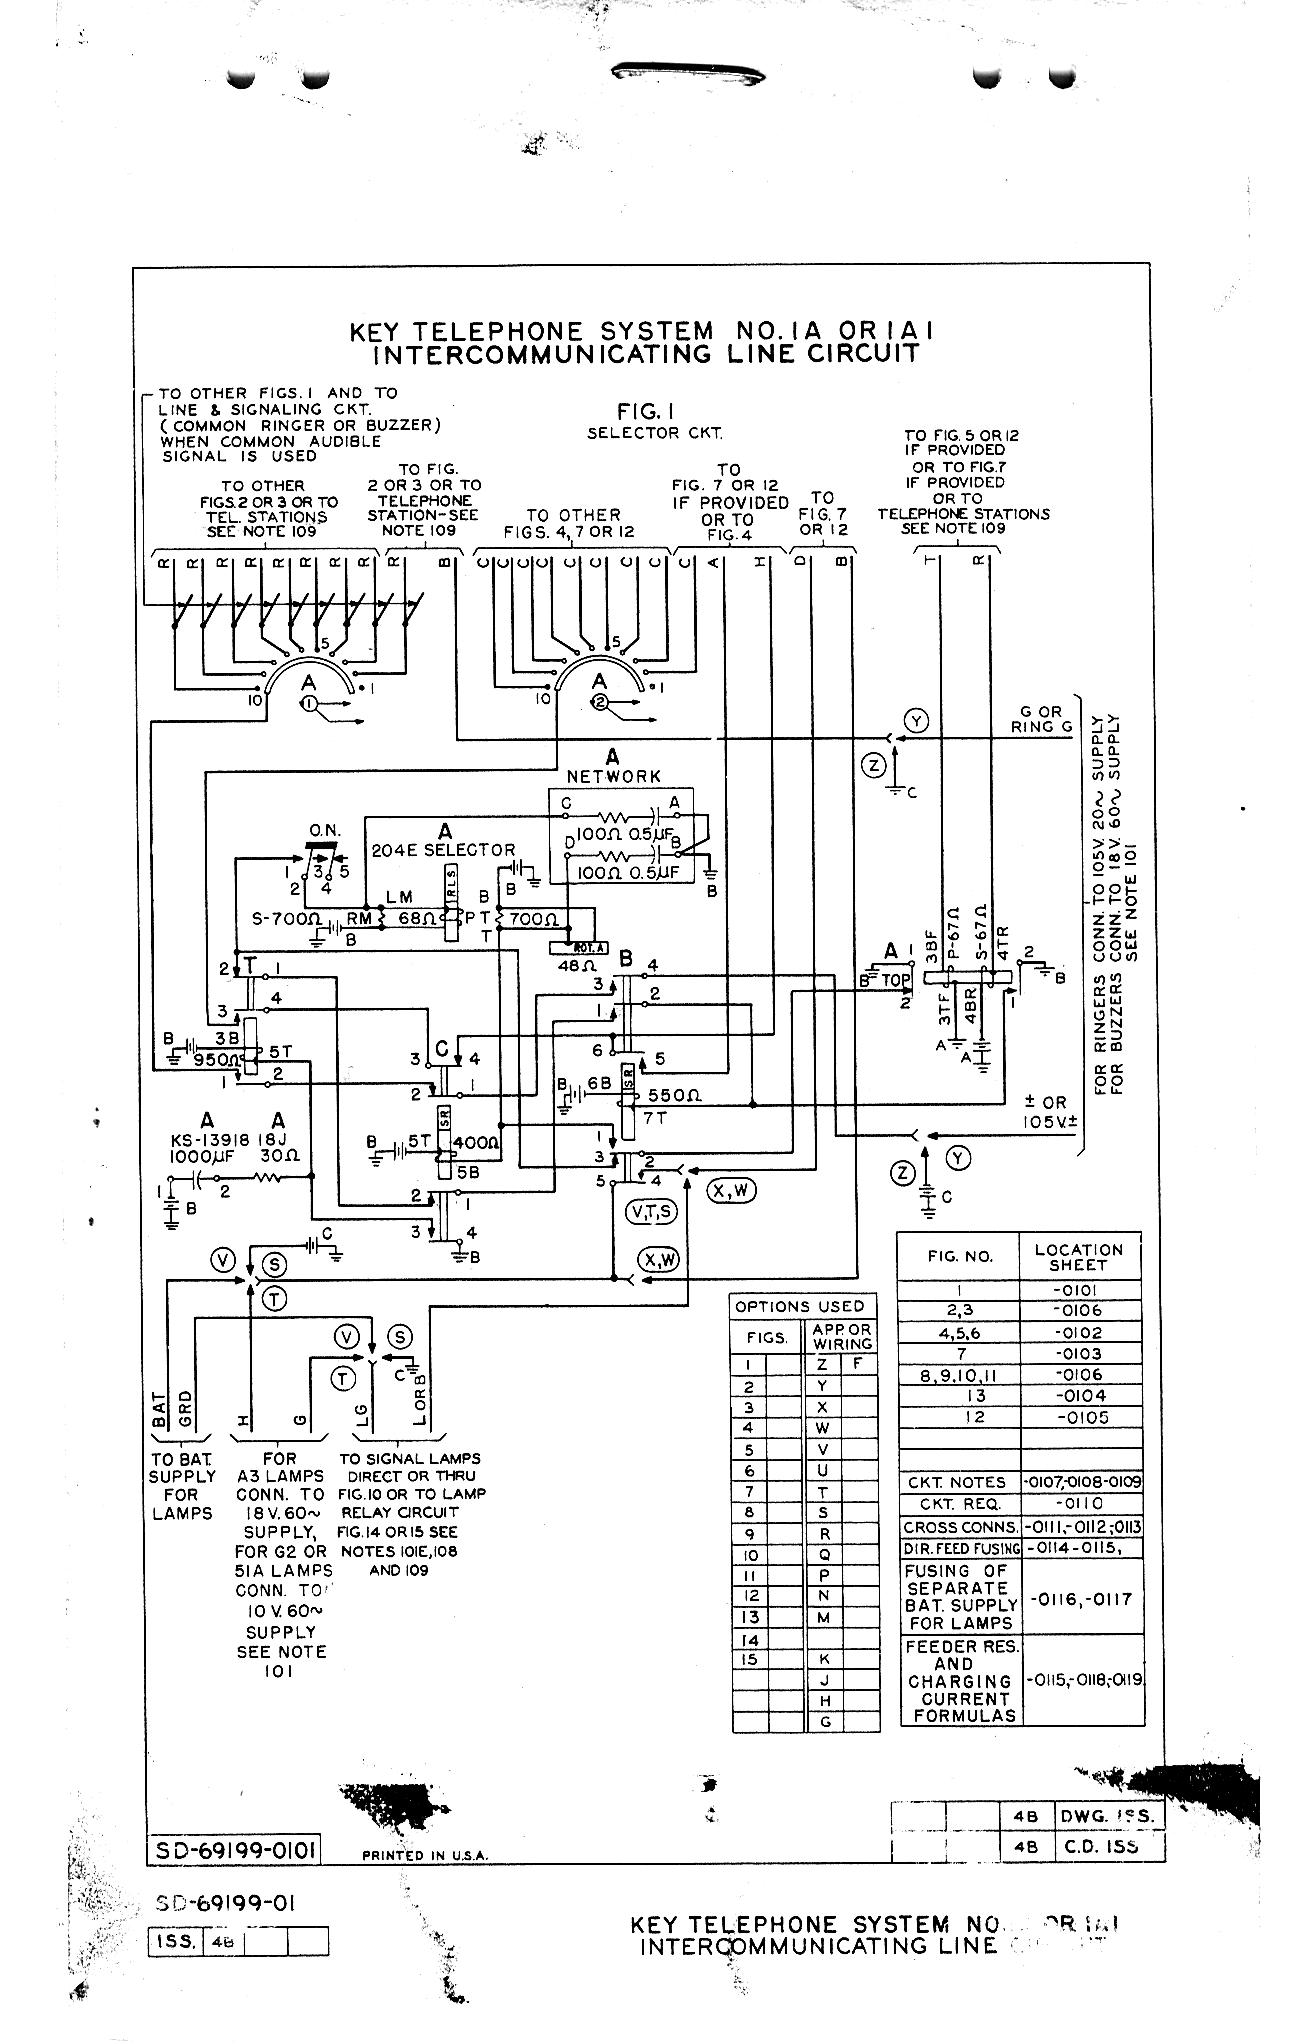 ktu_1a 1a1_intercom_fig1 telephone technical references western electric 554 wiring diagram at mifinder.co